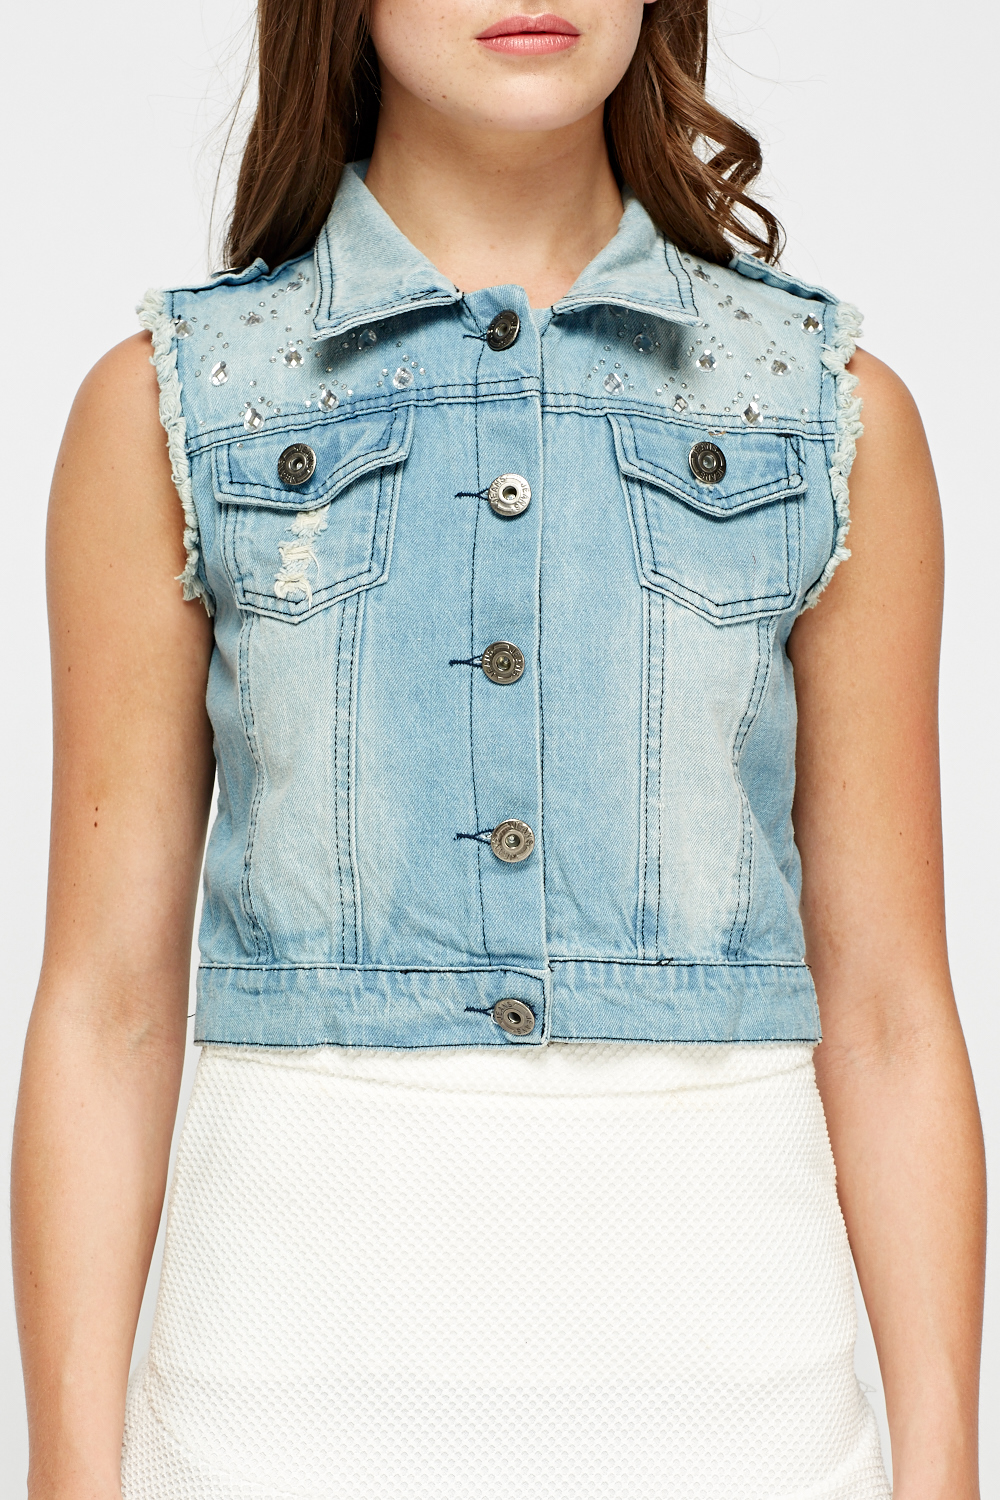 5df0d823e8afe8 Encrusted Denim Blue Sleeveless Jacket - Just £2